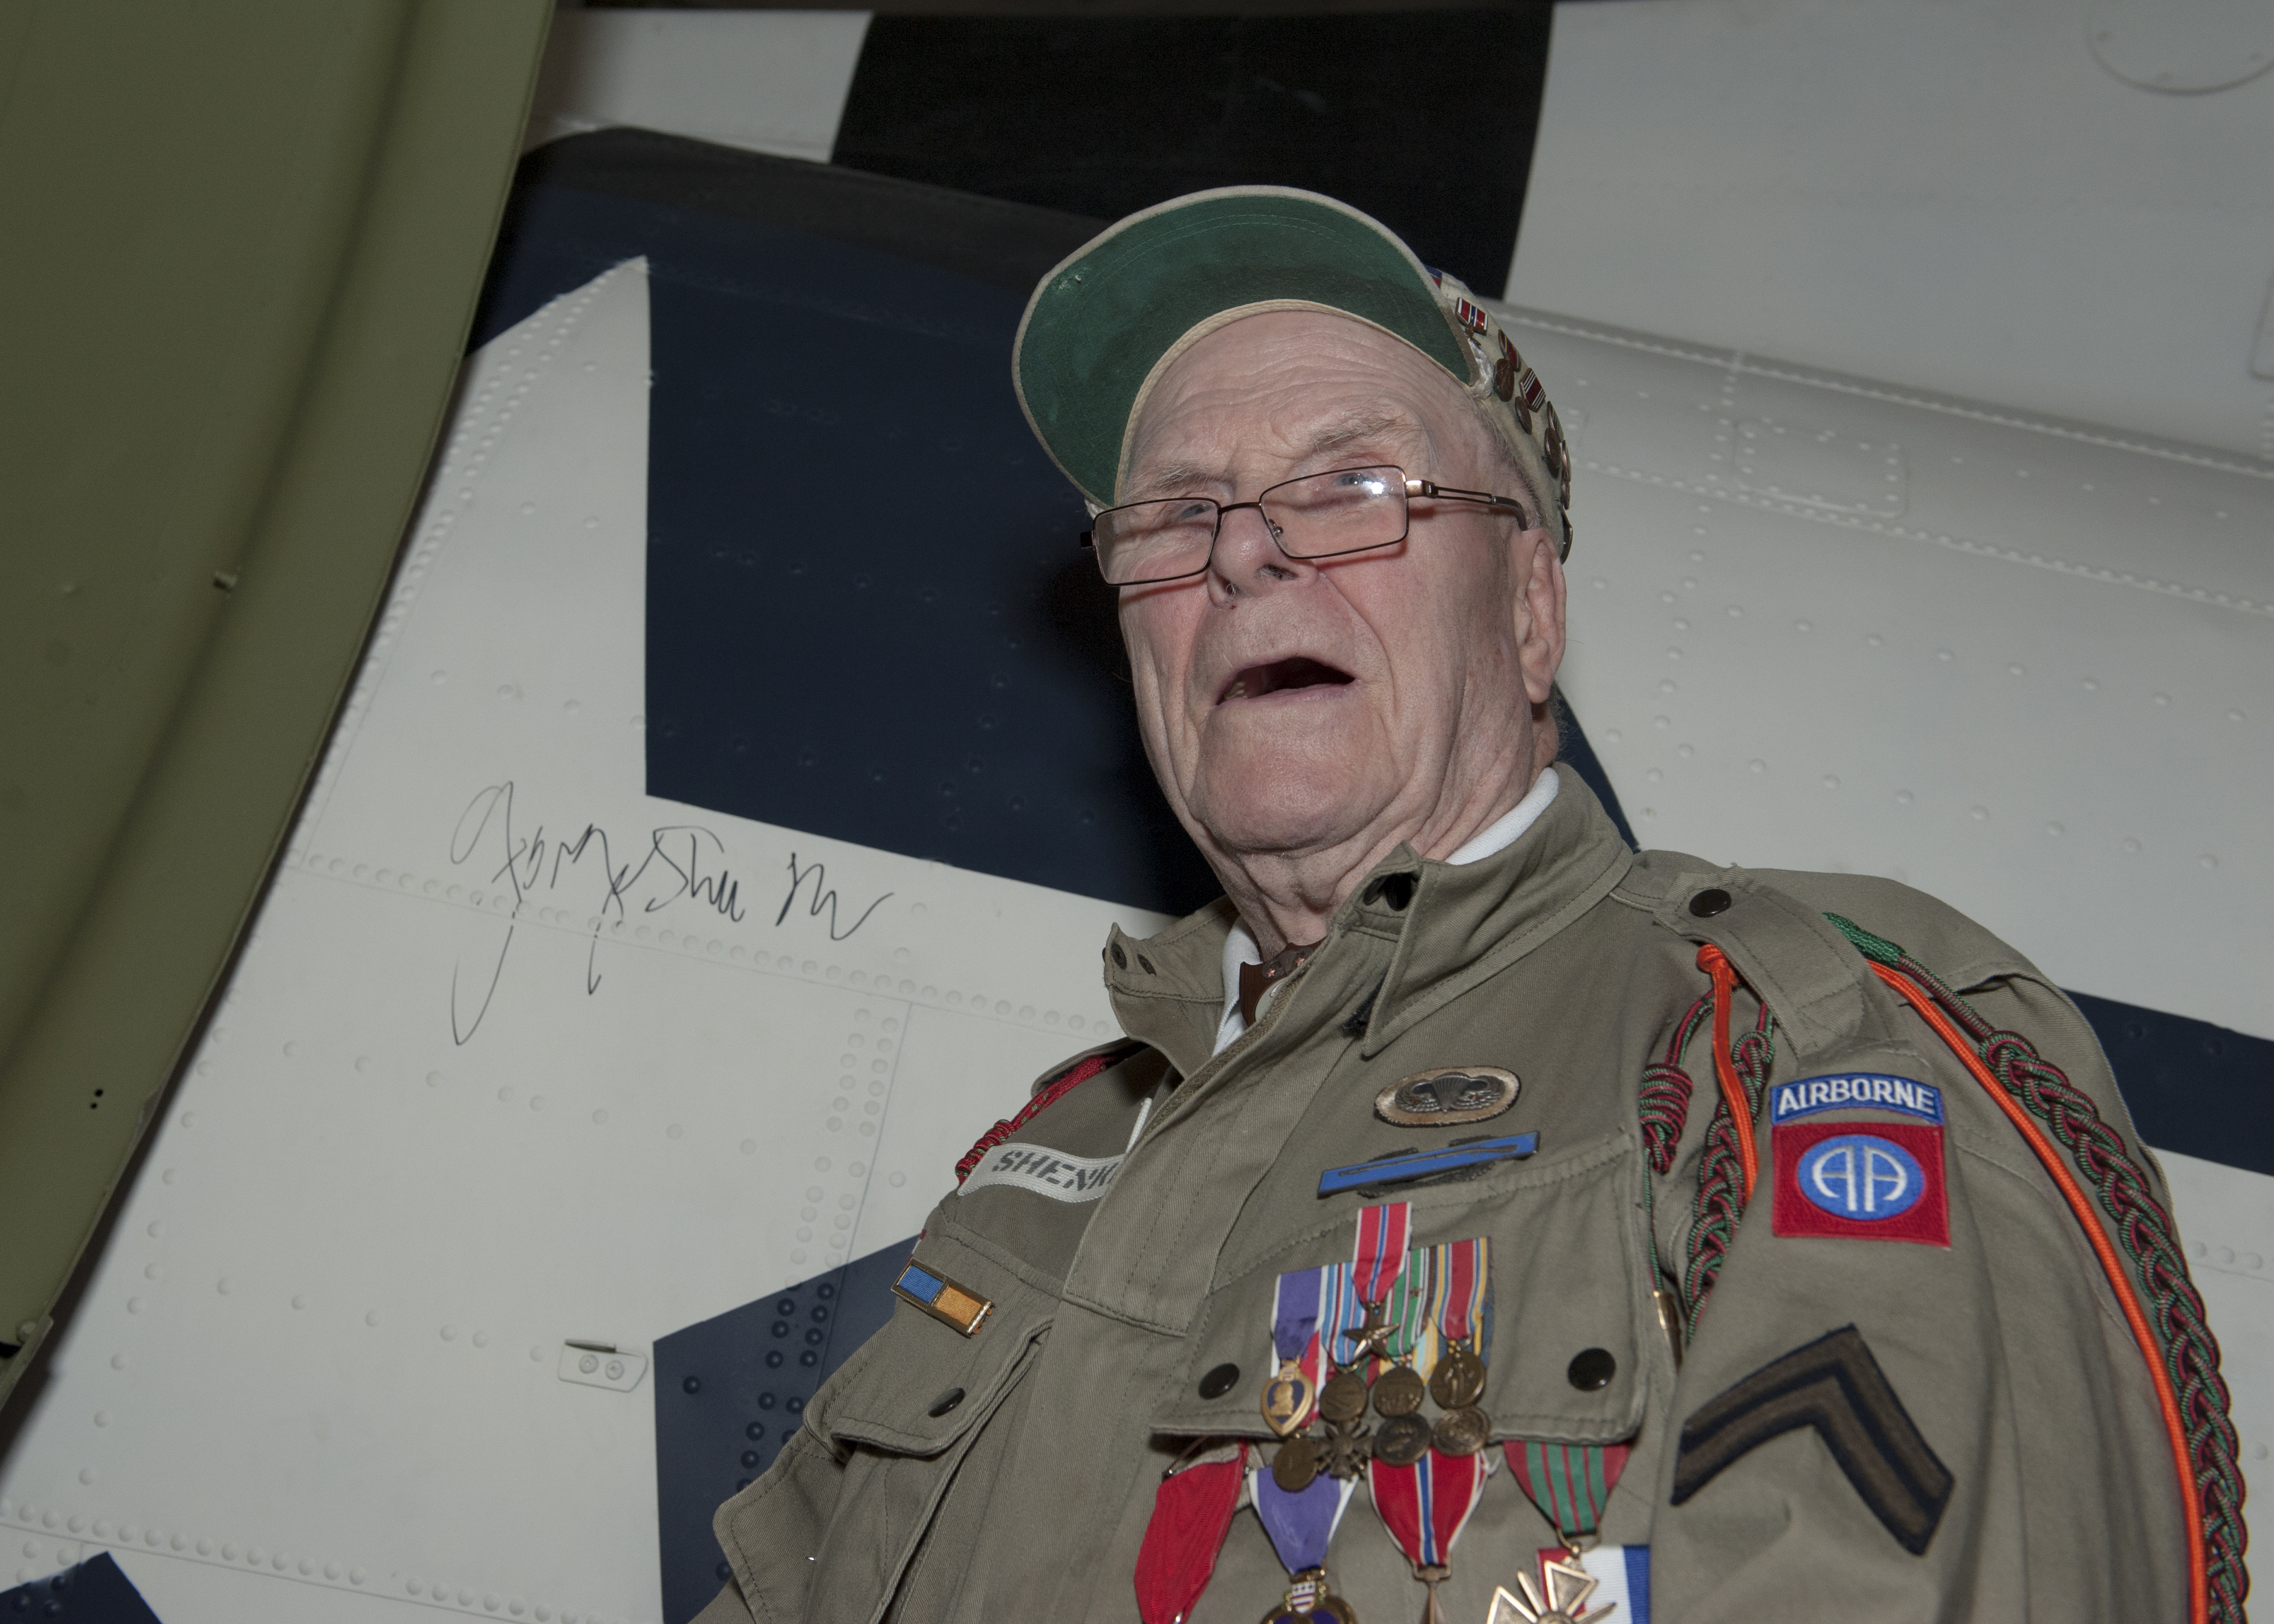 George Shenkle poses after autographing the roundel on the side of a C-47A Skytrain April 18, 2015, at the Air Mobility Command Museum,  near Dover Air Force Base, Del. Shenkle signed the roundel in the same fashion that he and his fellow paratroopers signed  hours before jumping into Normandy, France on D-Day, June 6, 1944. (U.S. Air Force photo/Airman 1st Class Zachary Cacicia)